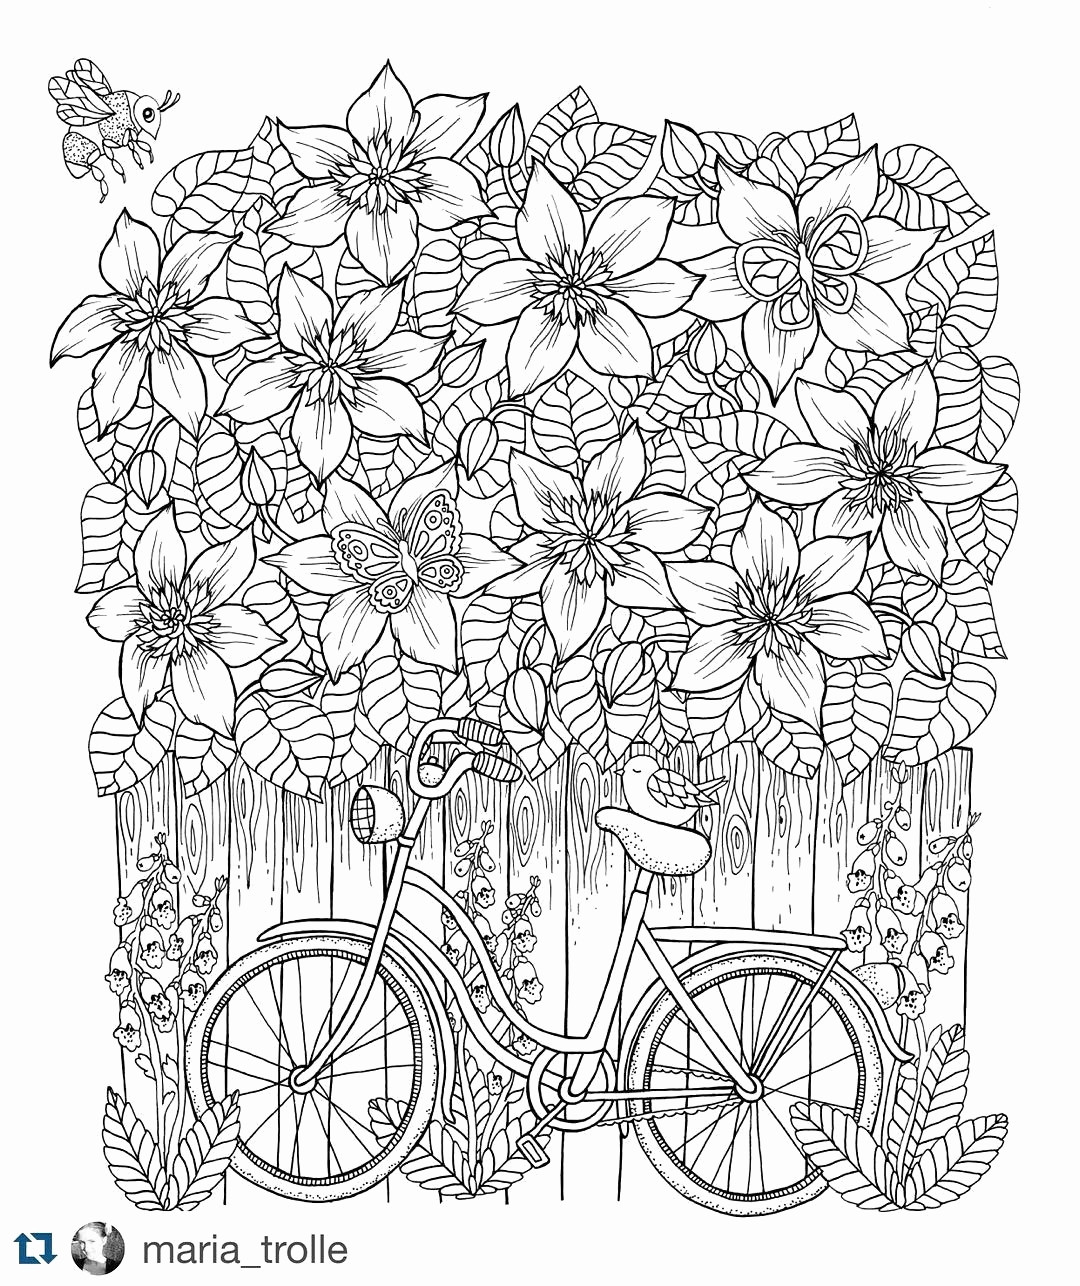 vw beetle vase of cool cars with flowers wiring diagrams • intended for coloring sheets of cars unique cool vases flower vase coloring page rh amegawood com cool cars with big rims cool future cars